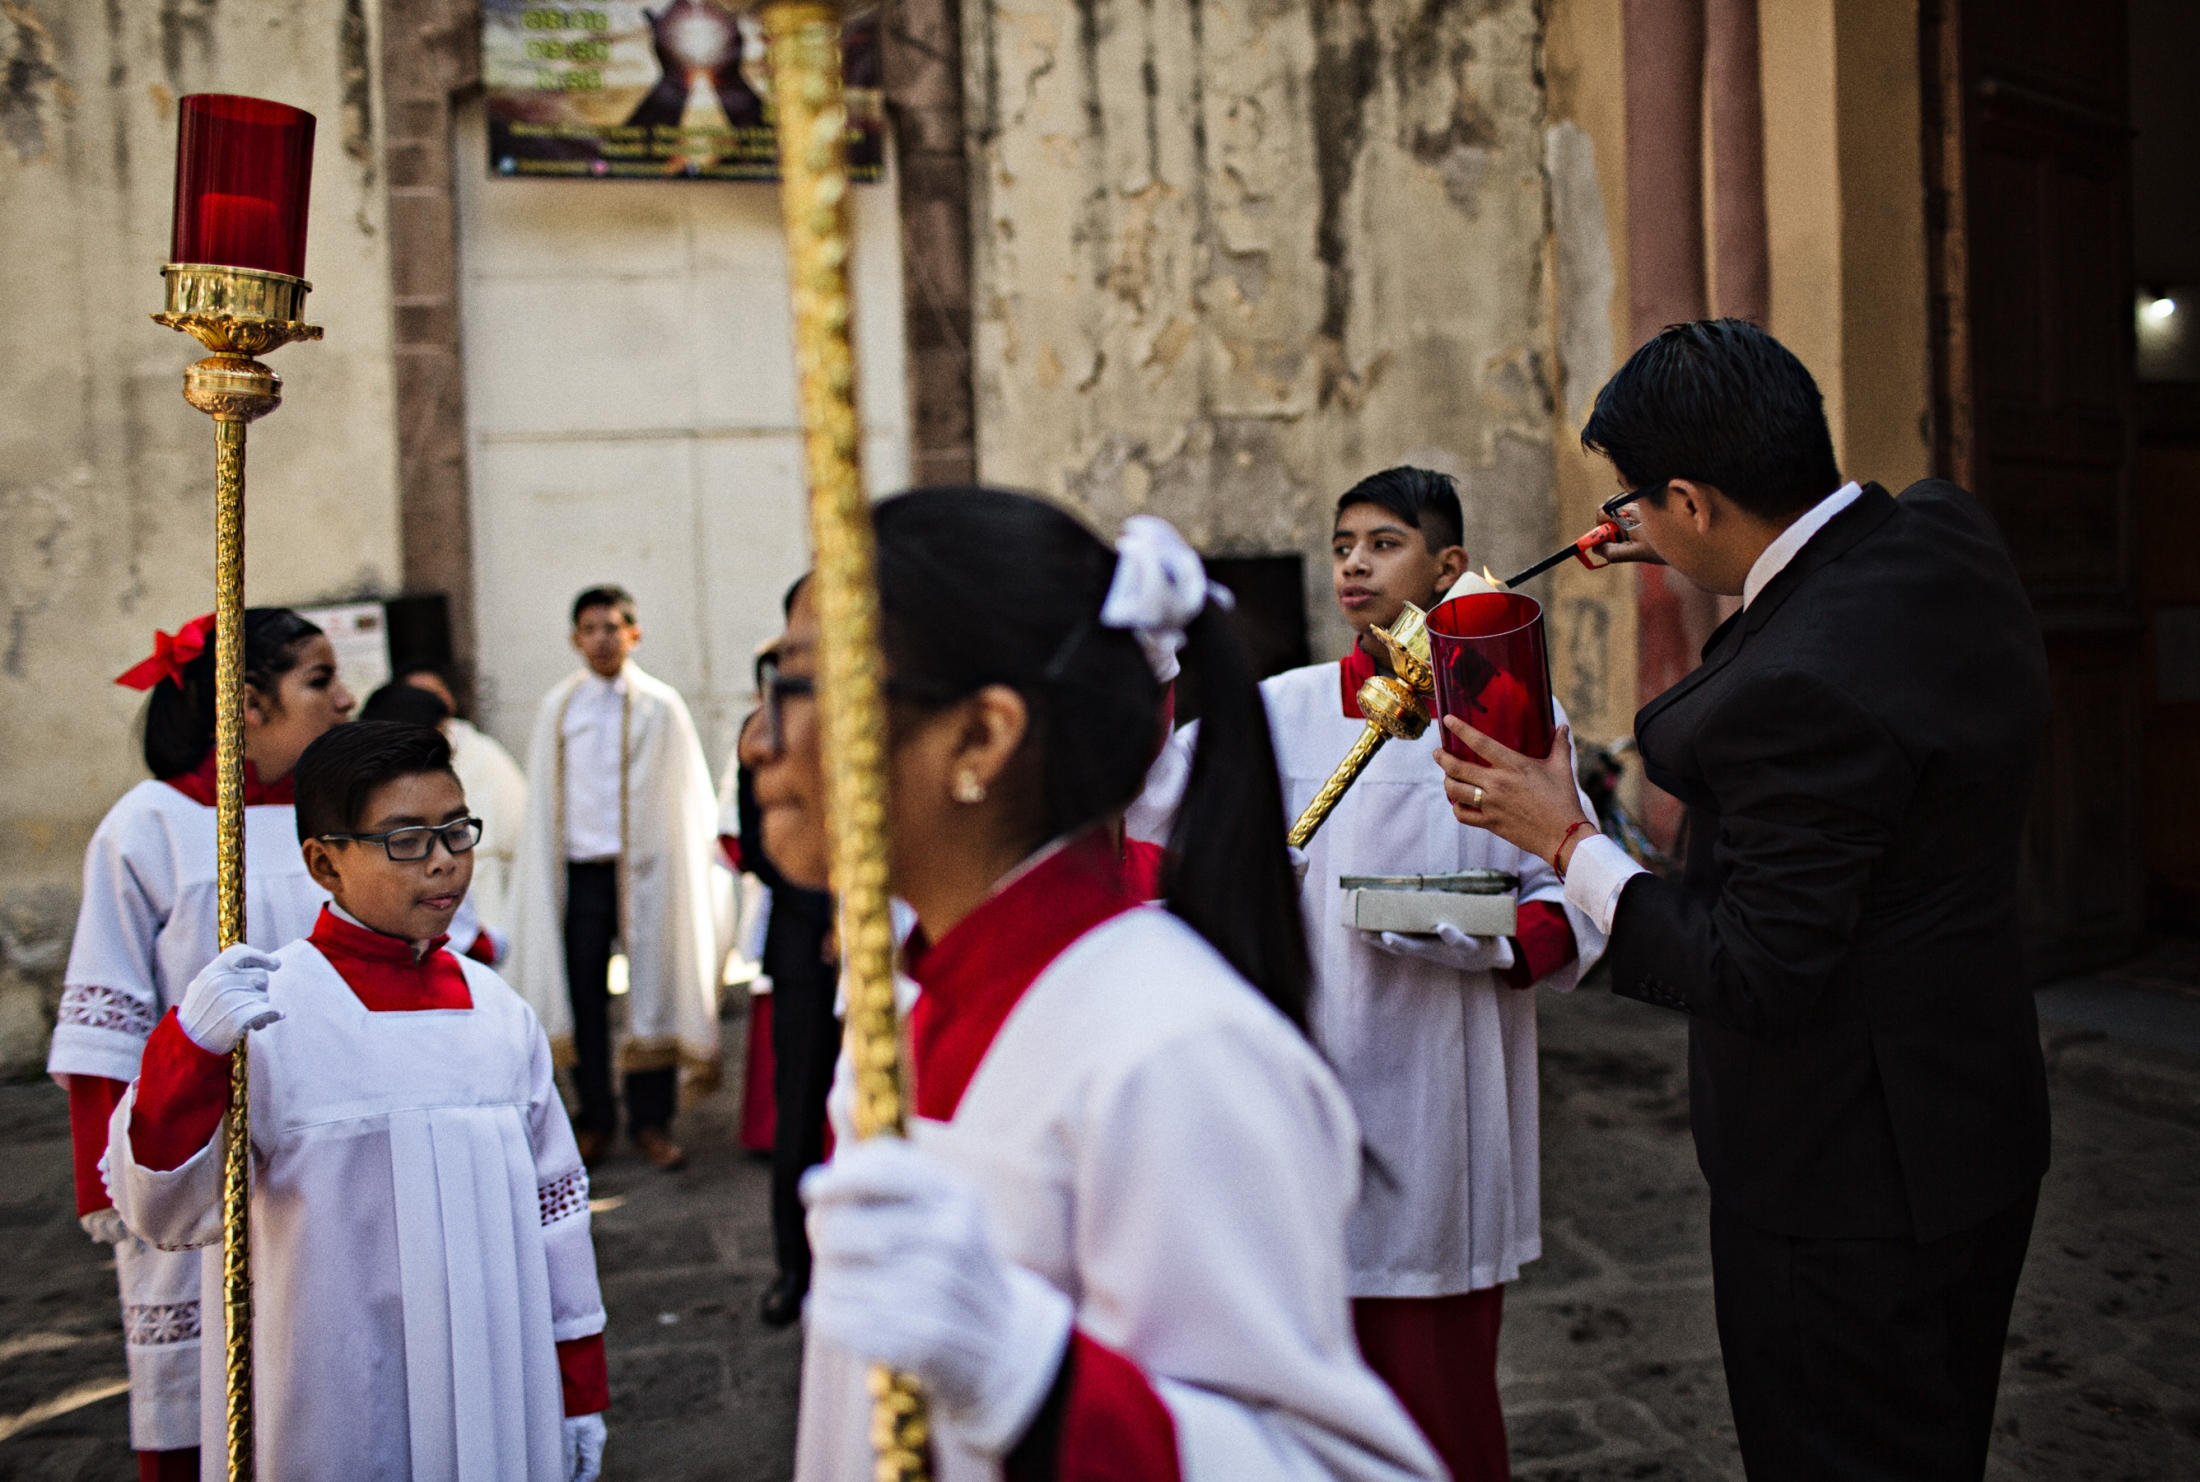 At the cathedral, alter boys and girls wait the arrival of the Cardinal and the Niñopa.